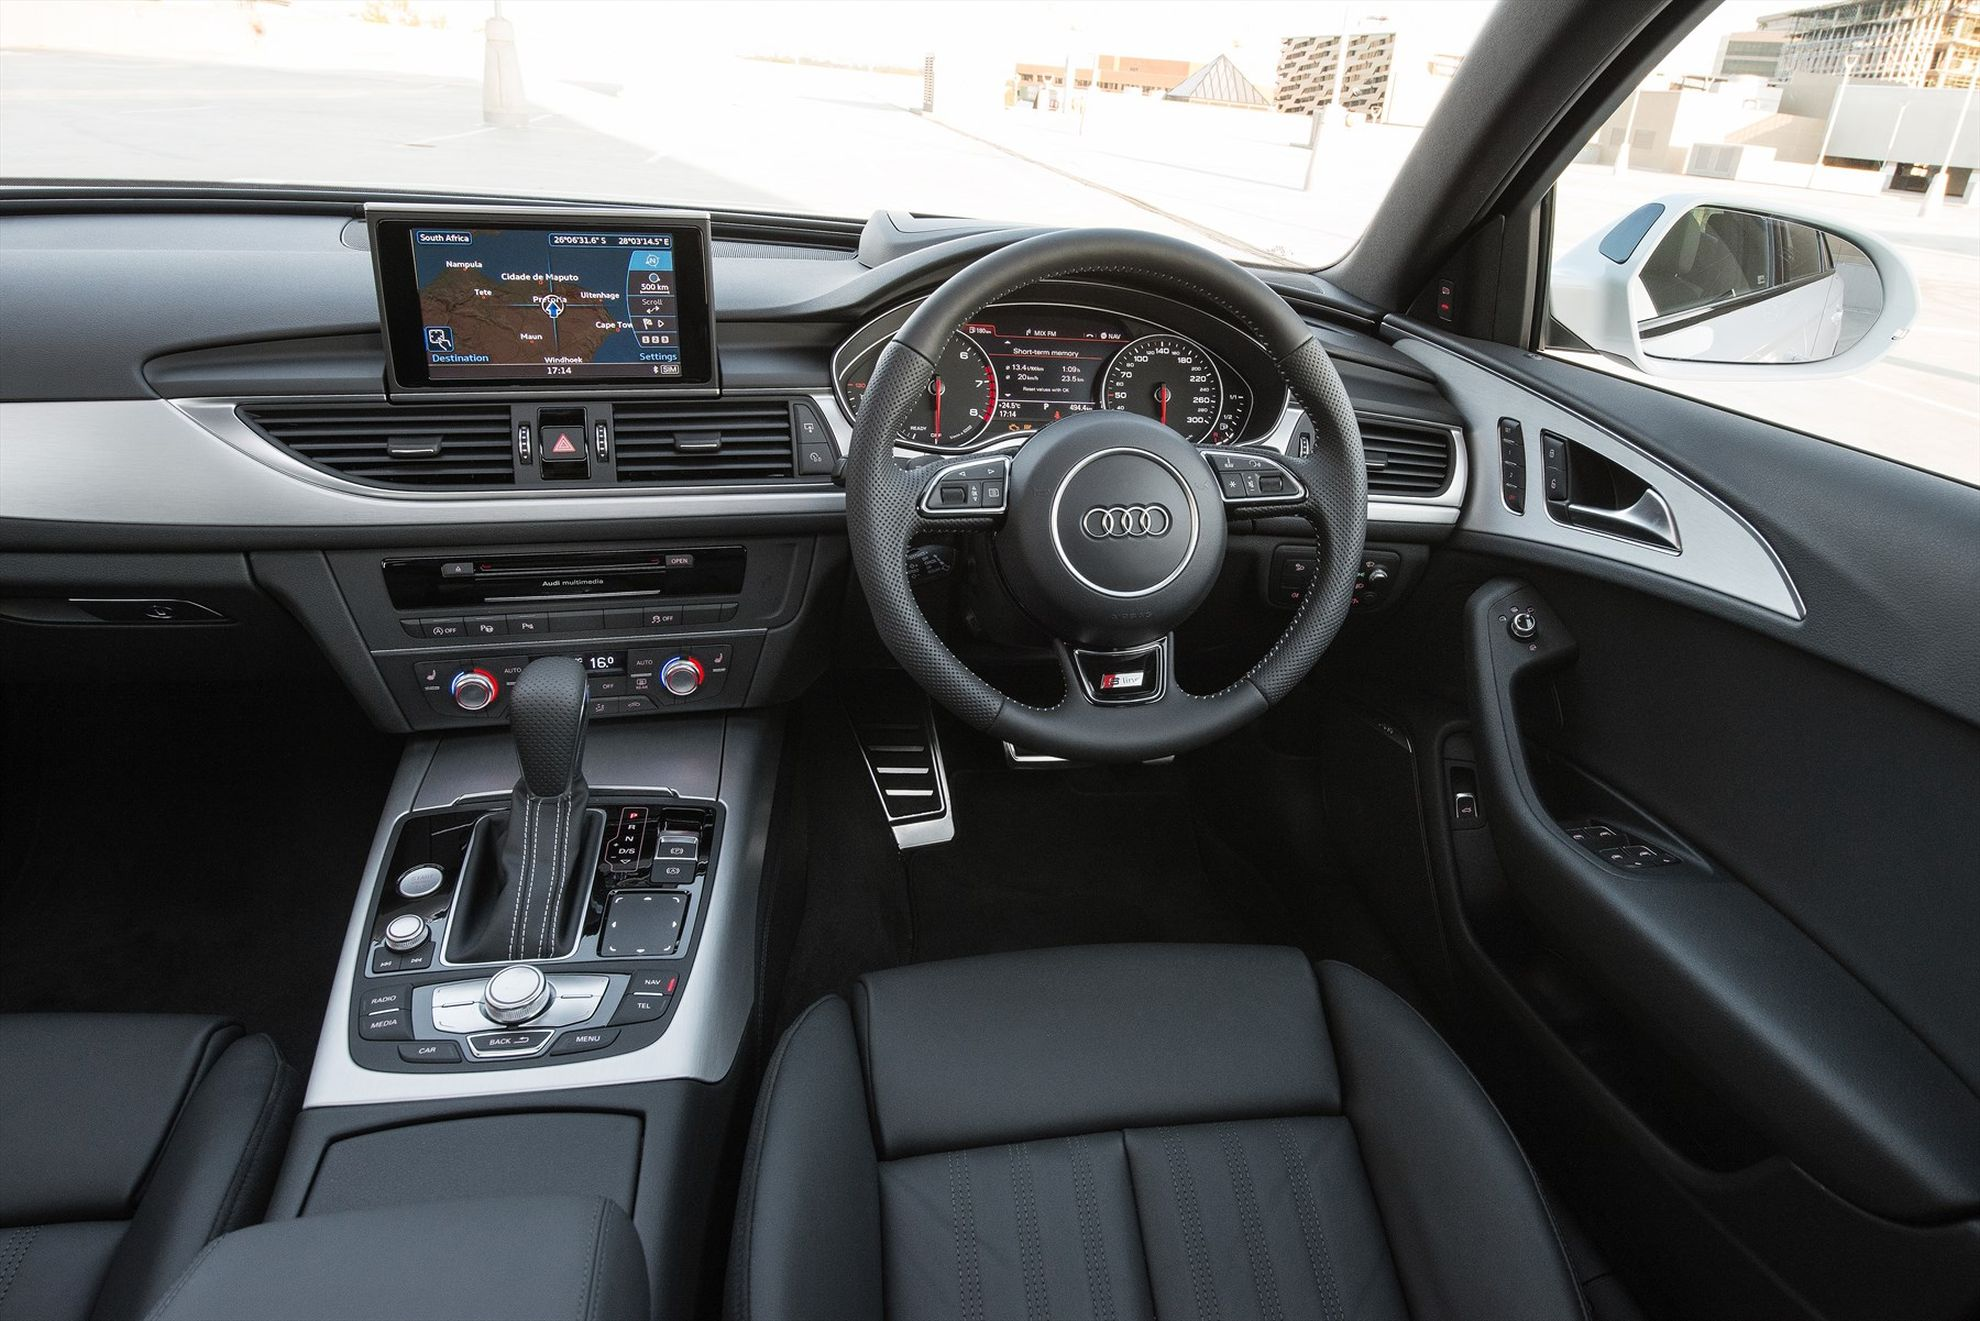 Improved-power-and-styling-the-new-Audi-A6-and-Audi-A7-Sportback-A6-interior